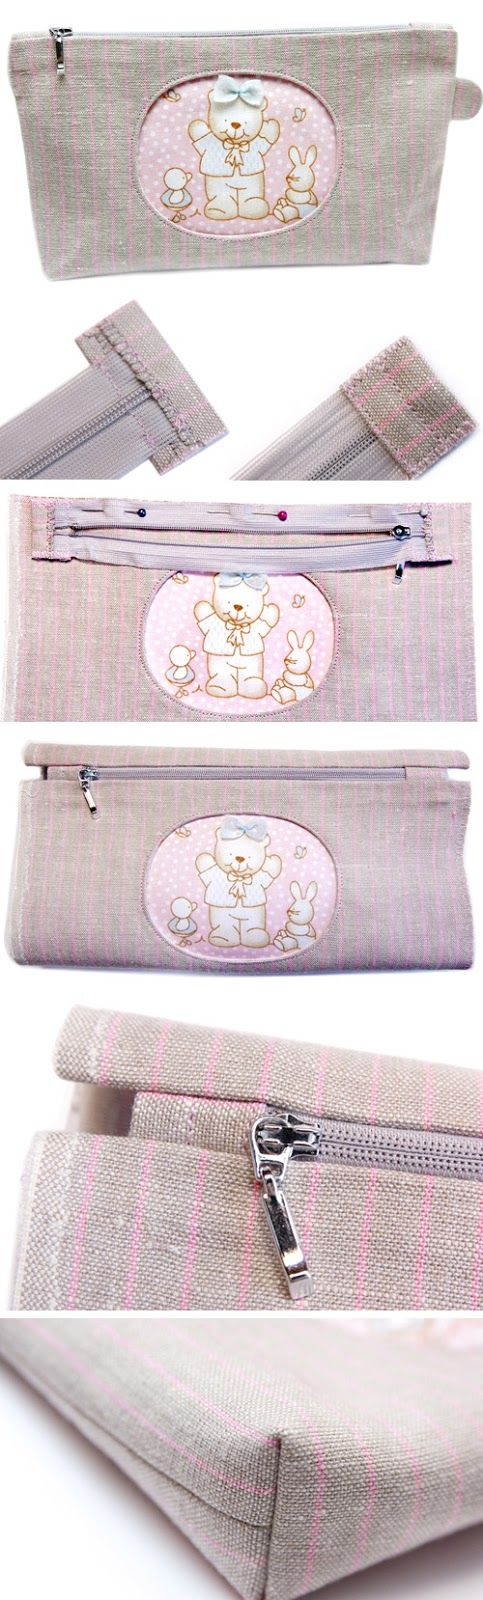 Necessaire - Zippered Cosmetic Bag Appliqué Teddy Bear. Tutorial DIY in Pictures. http://www.handmadiya.com/2015/11/cosmetic-bag-with-applique-bear.html